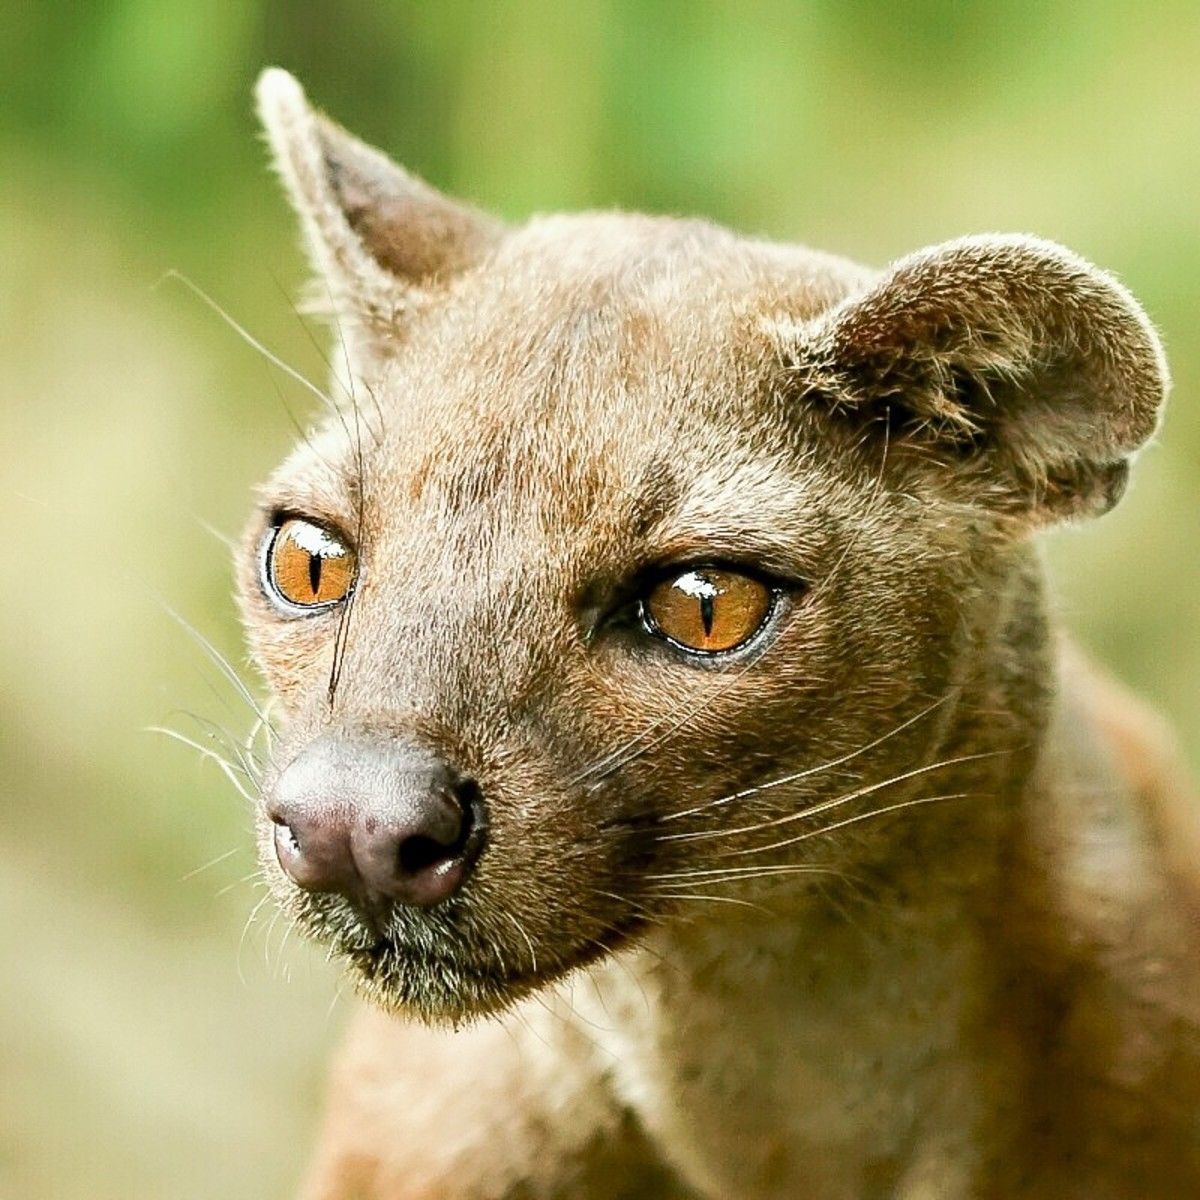 The face of a fossa